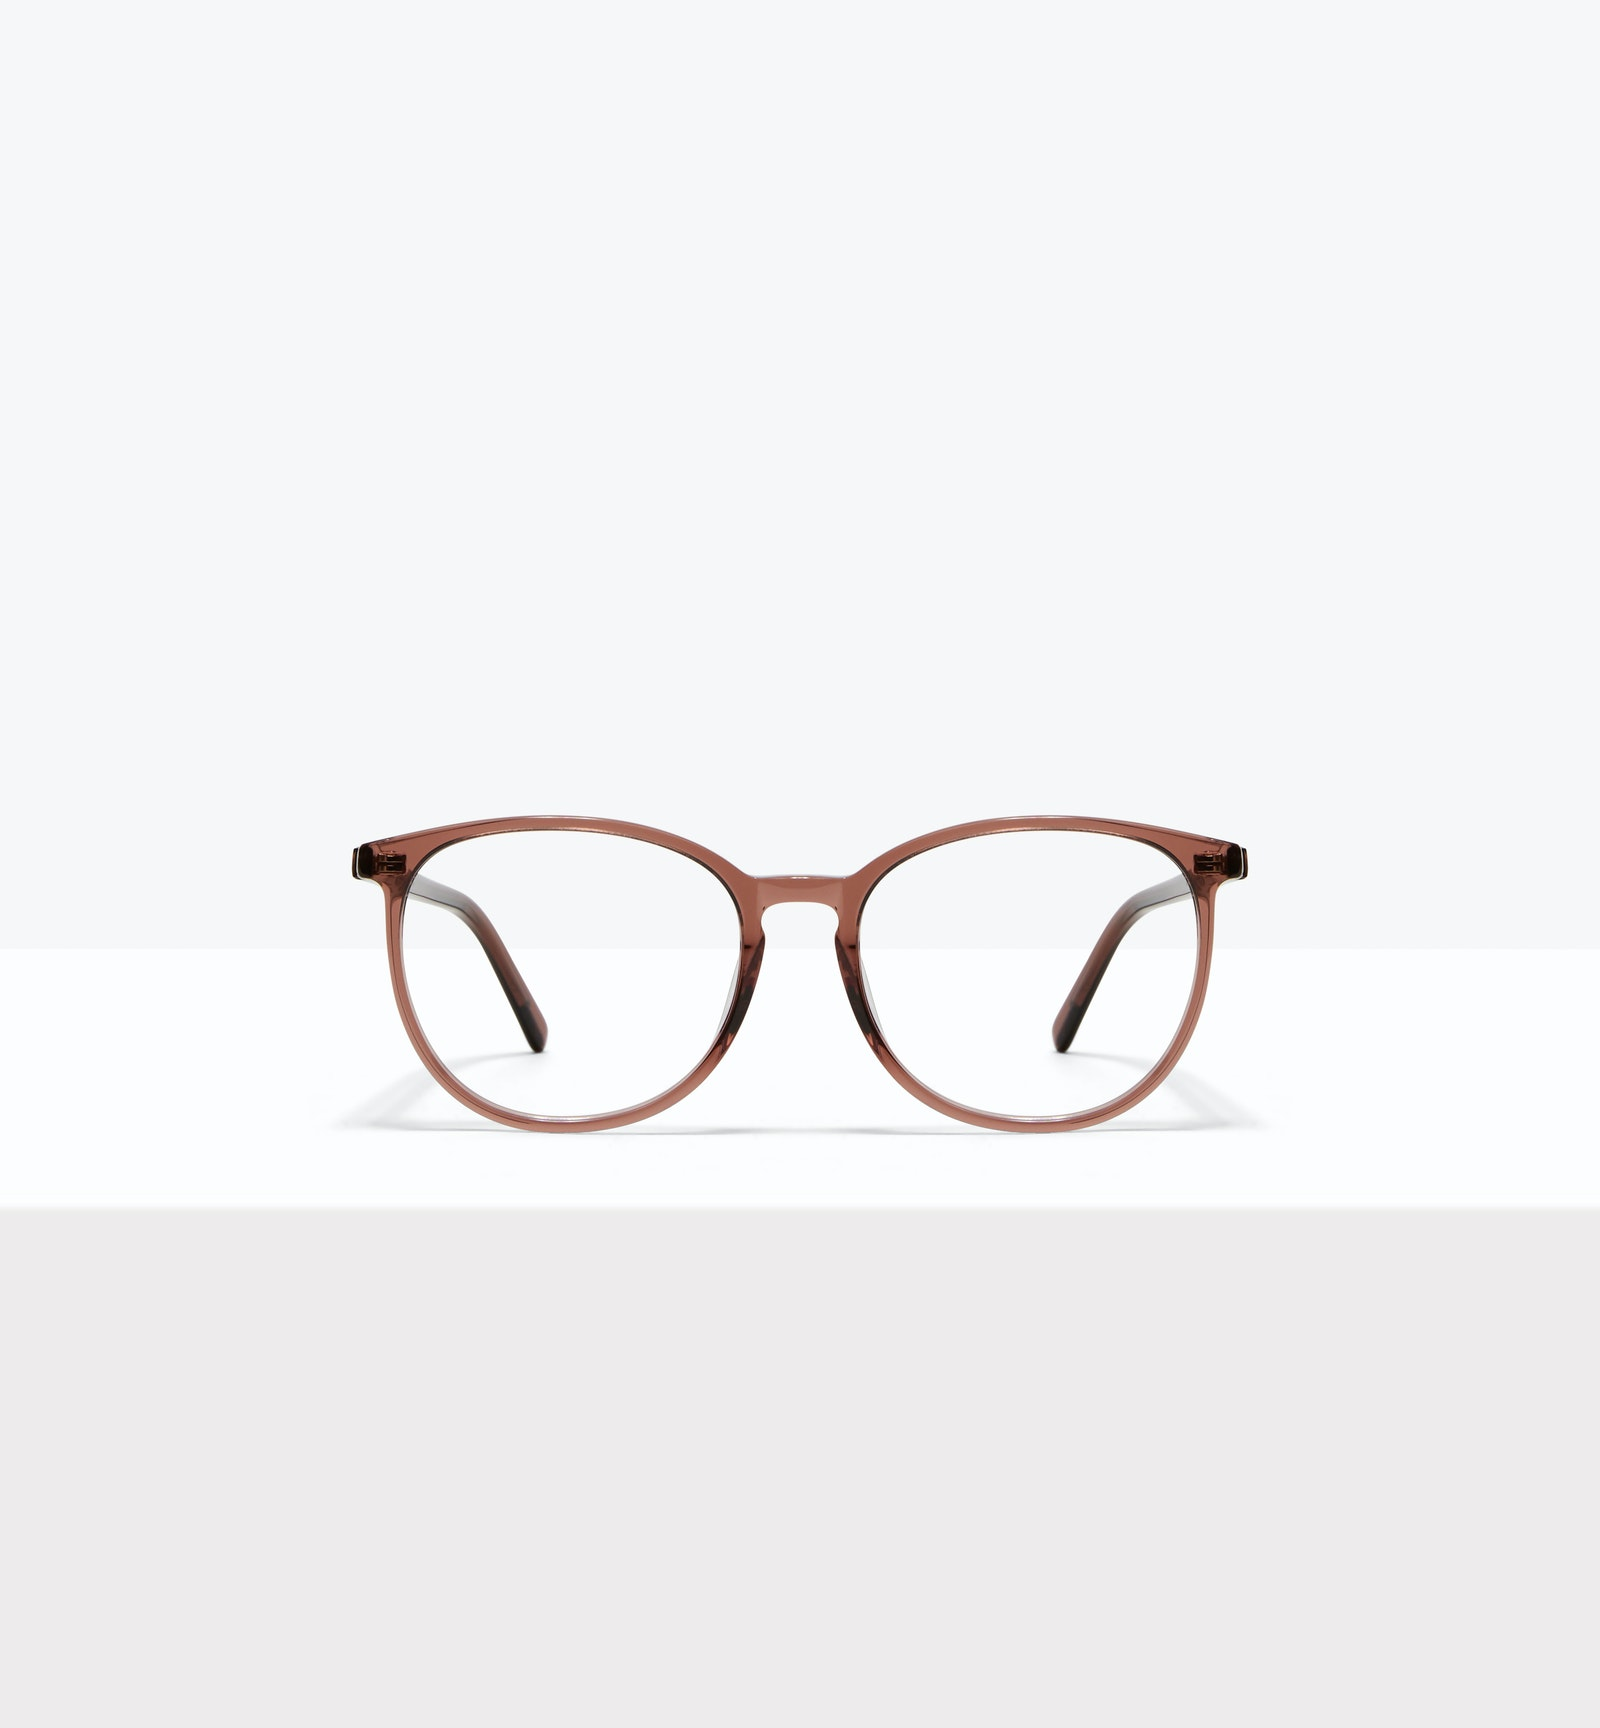 Affordable Fashion Glasses Round Eyeglasses Women Femme Libre Catherine